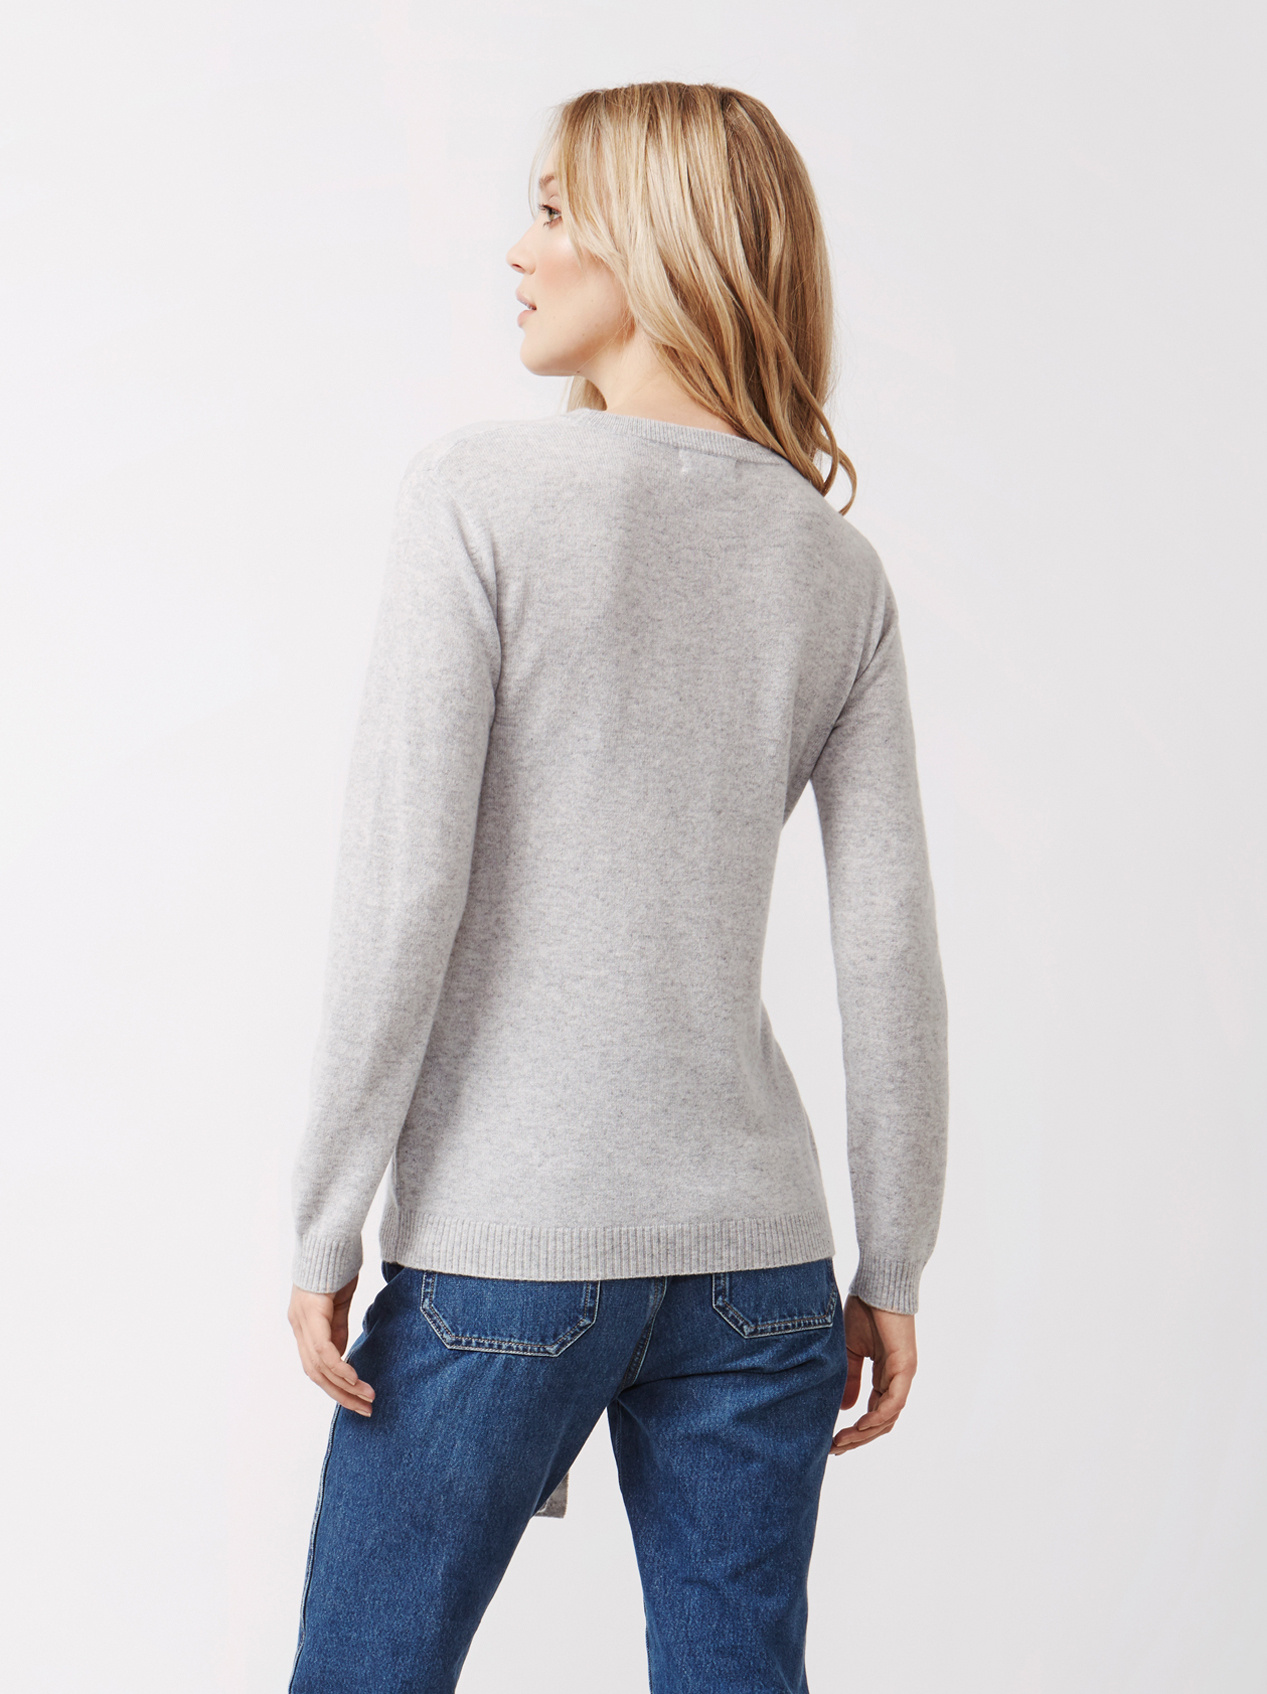 Soft Goat Women's Knot Sweater Light Grey